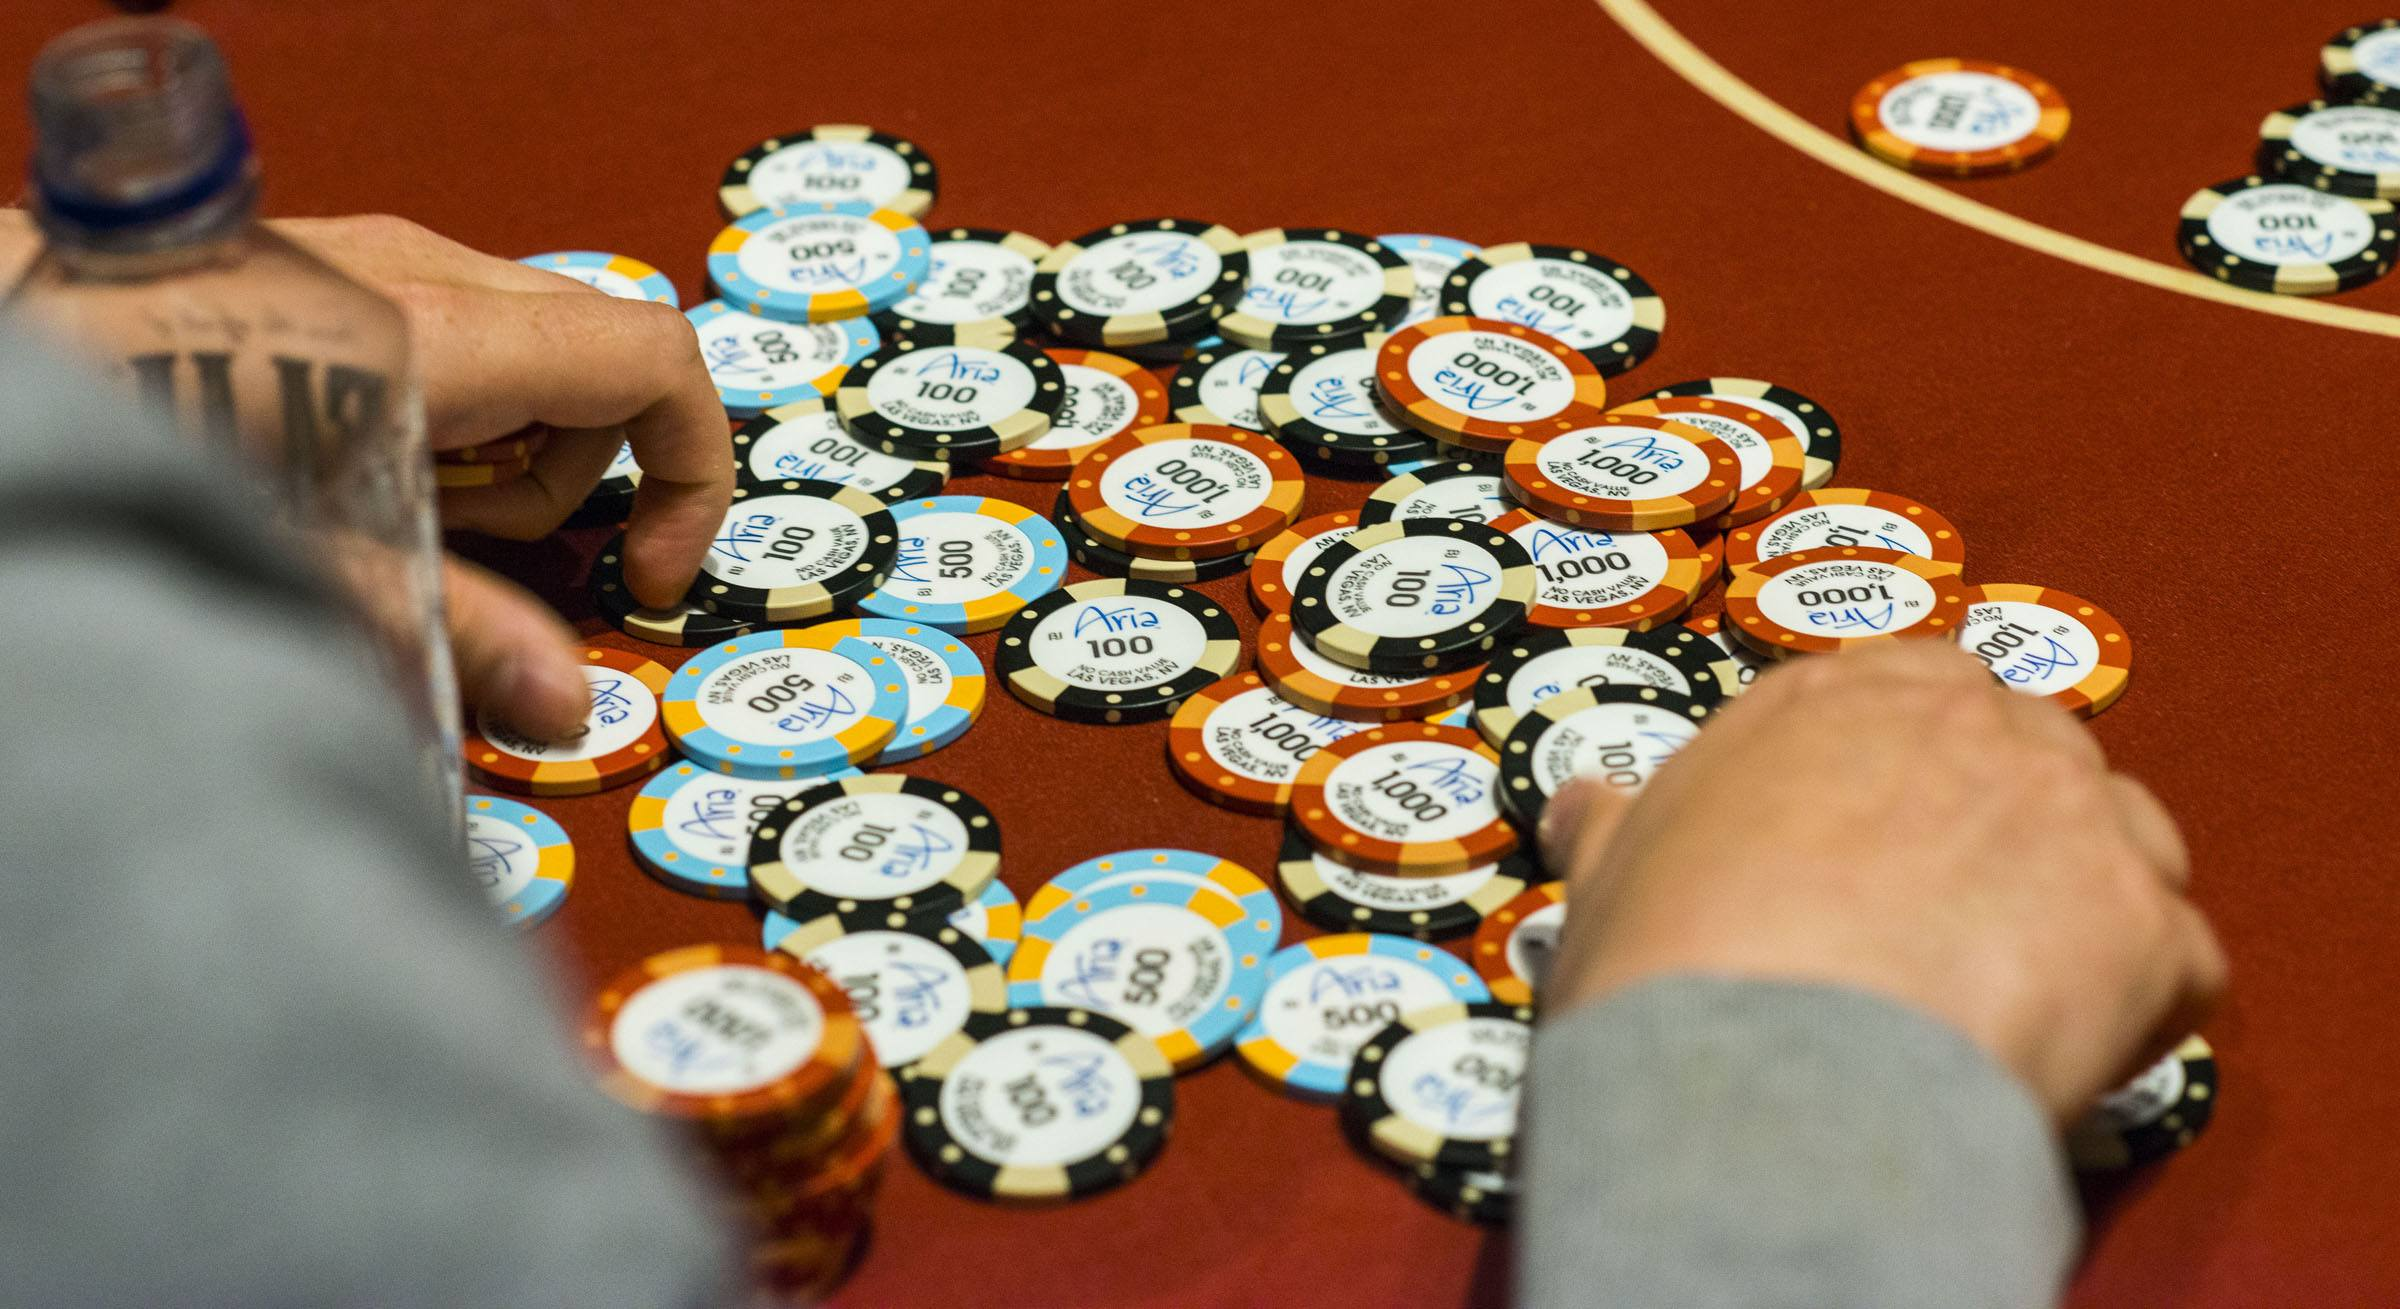 Game chips and tokens used in the casino game